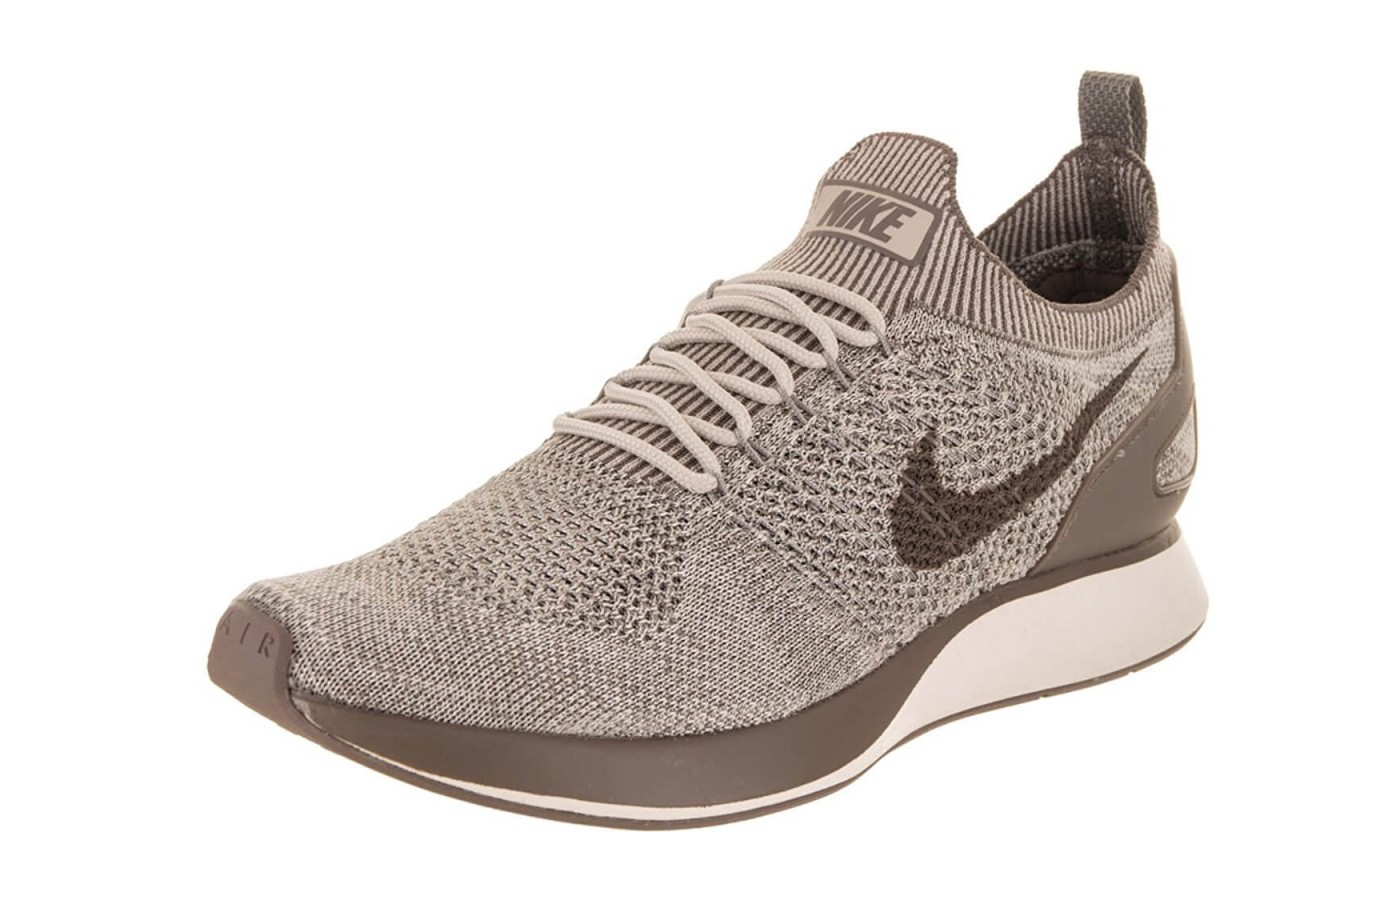 low priced 6fdb2 51eb0 The Nike Air Zoom Mariah Flyknit Racer features a breathable Flyknit upper  ...